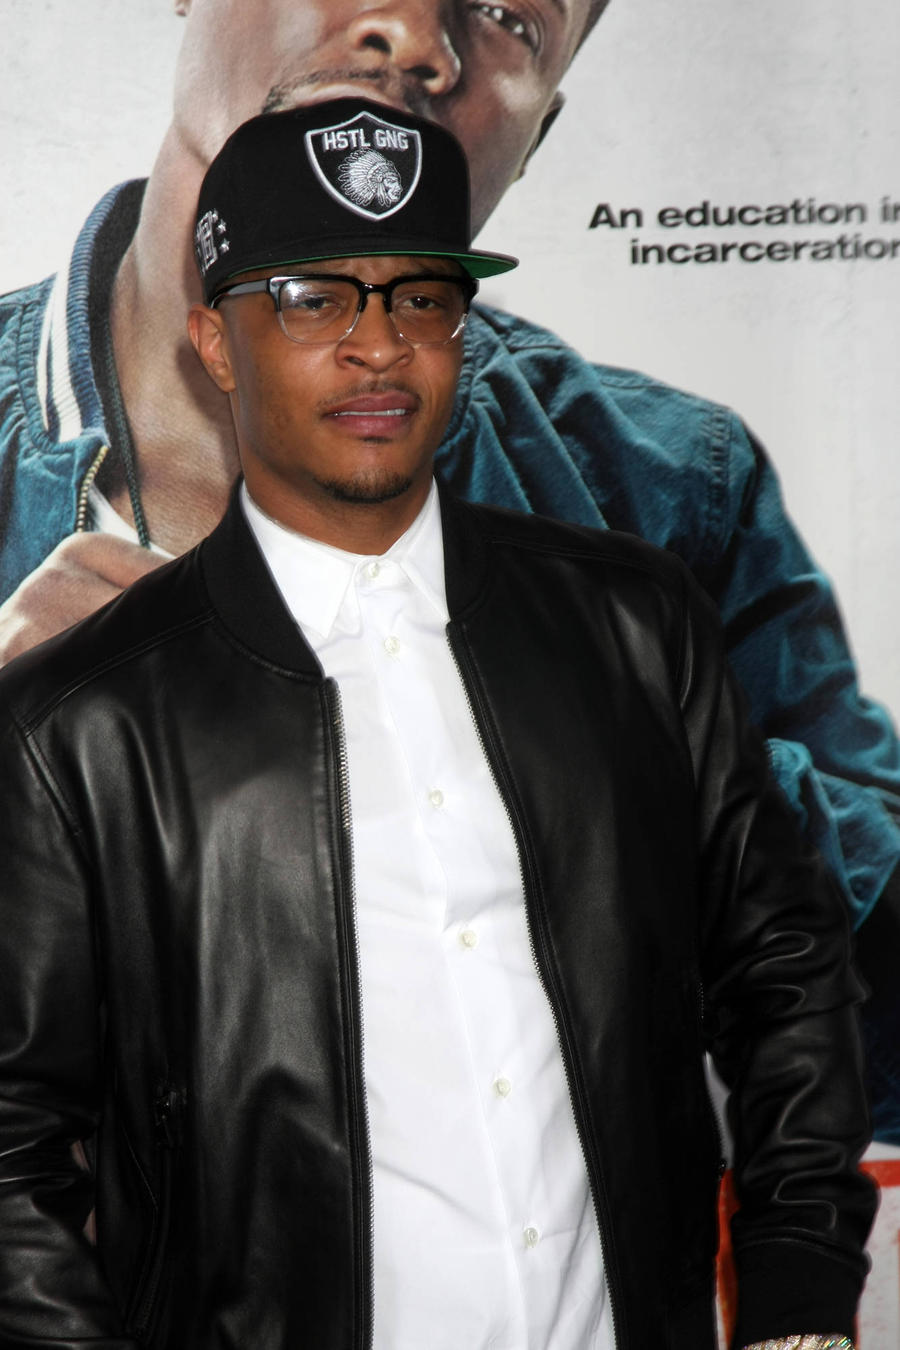 Rapper T.i. To Lil Wayne: 'Stop Embarrassing Yourself'